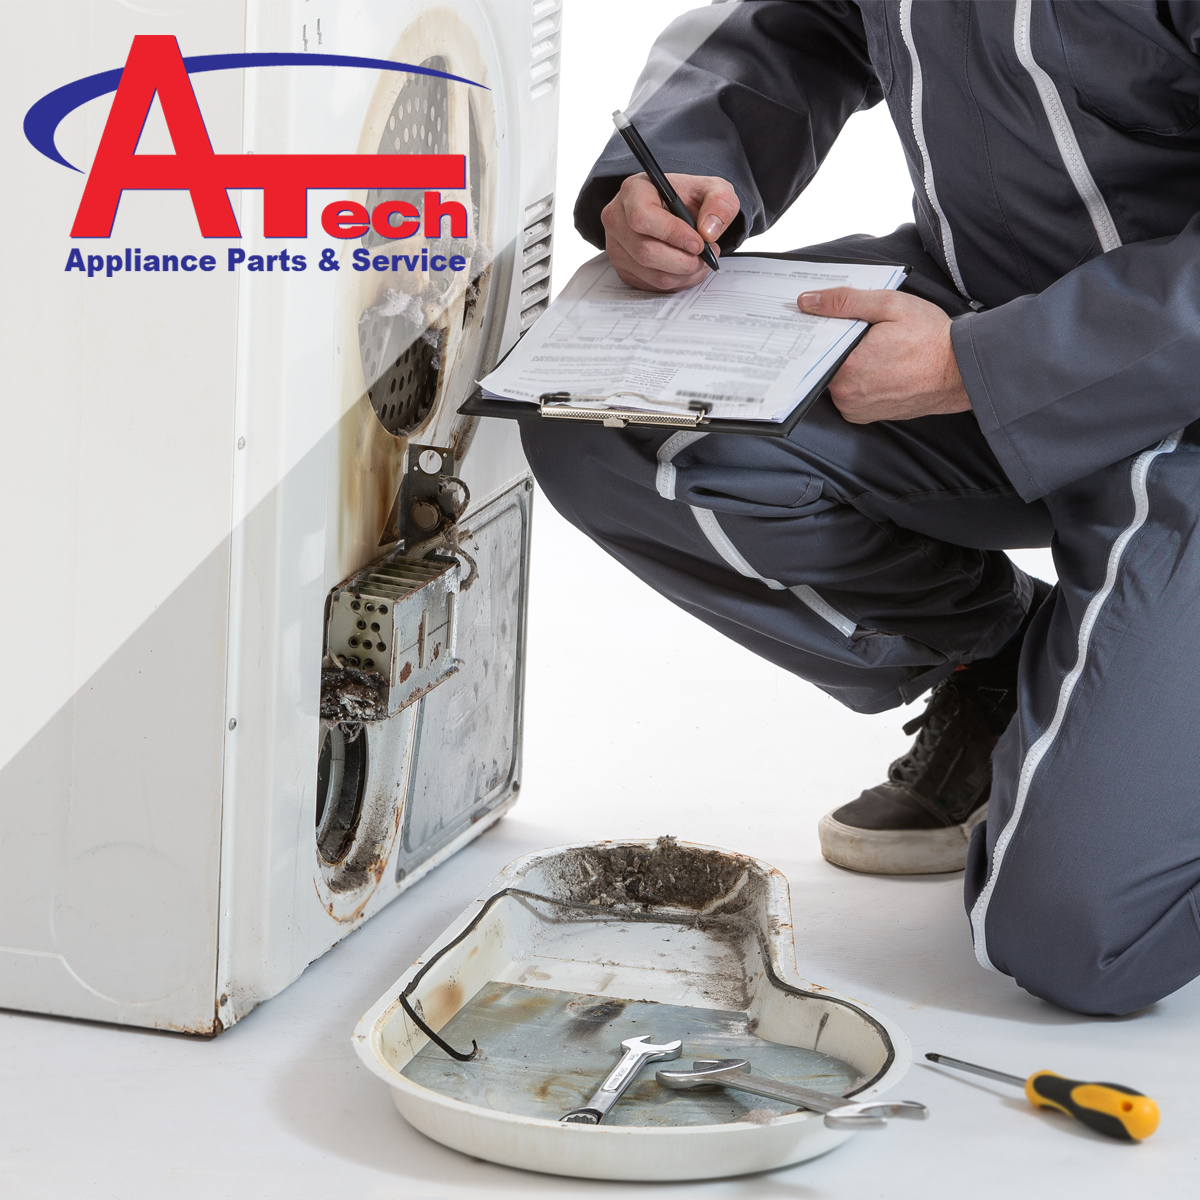 Do You Need Service? A-Tech